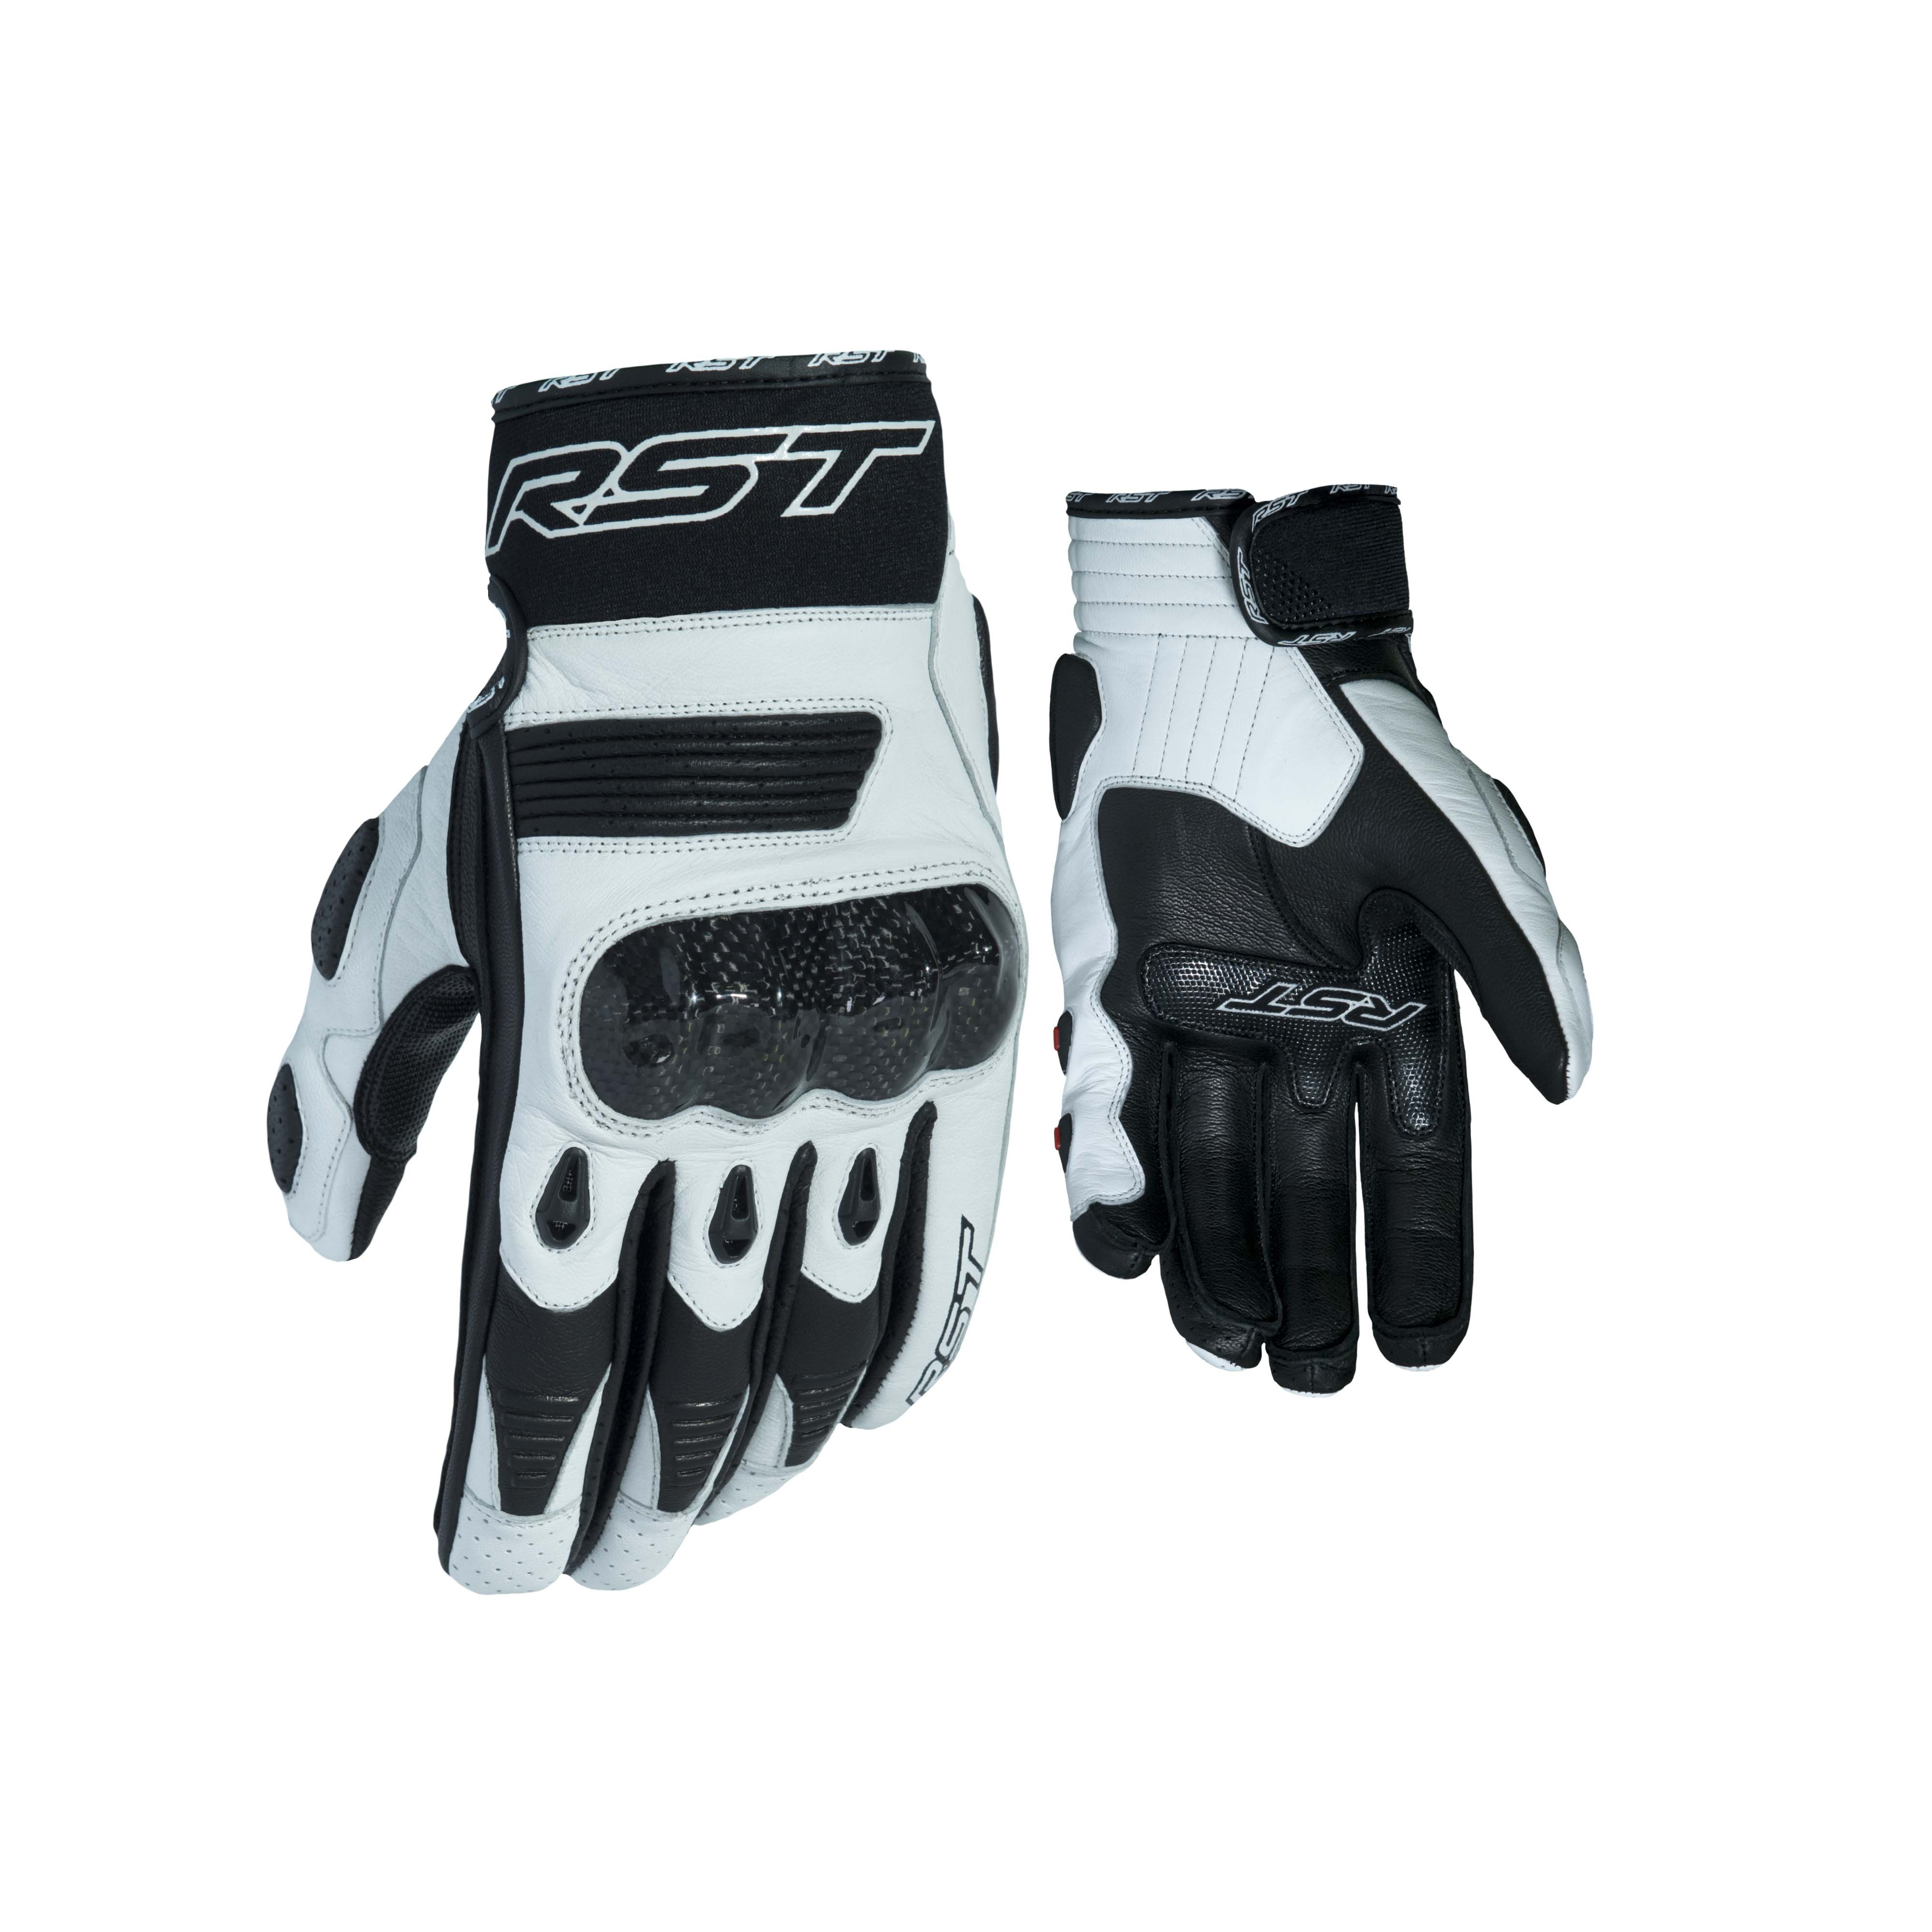 Rst Freestyle Motorcycle Leather Glove